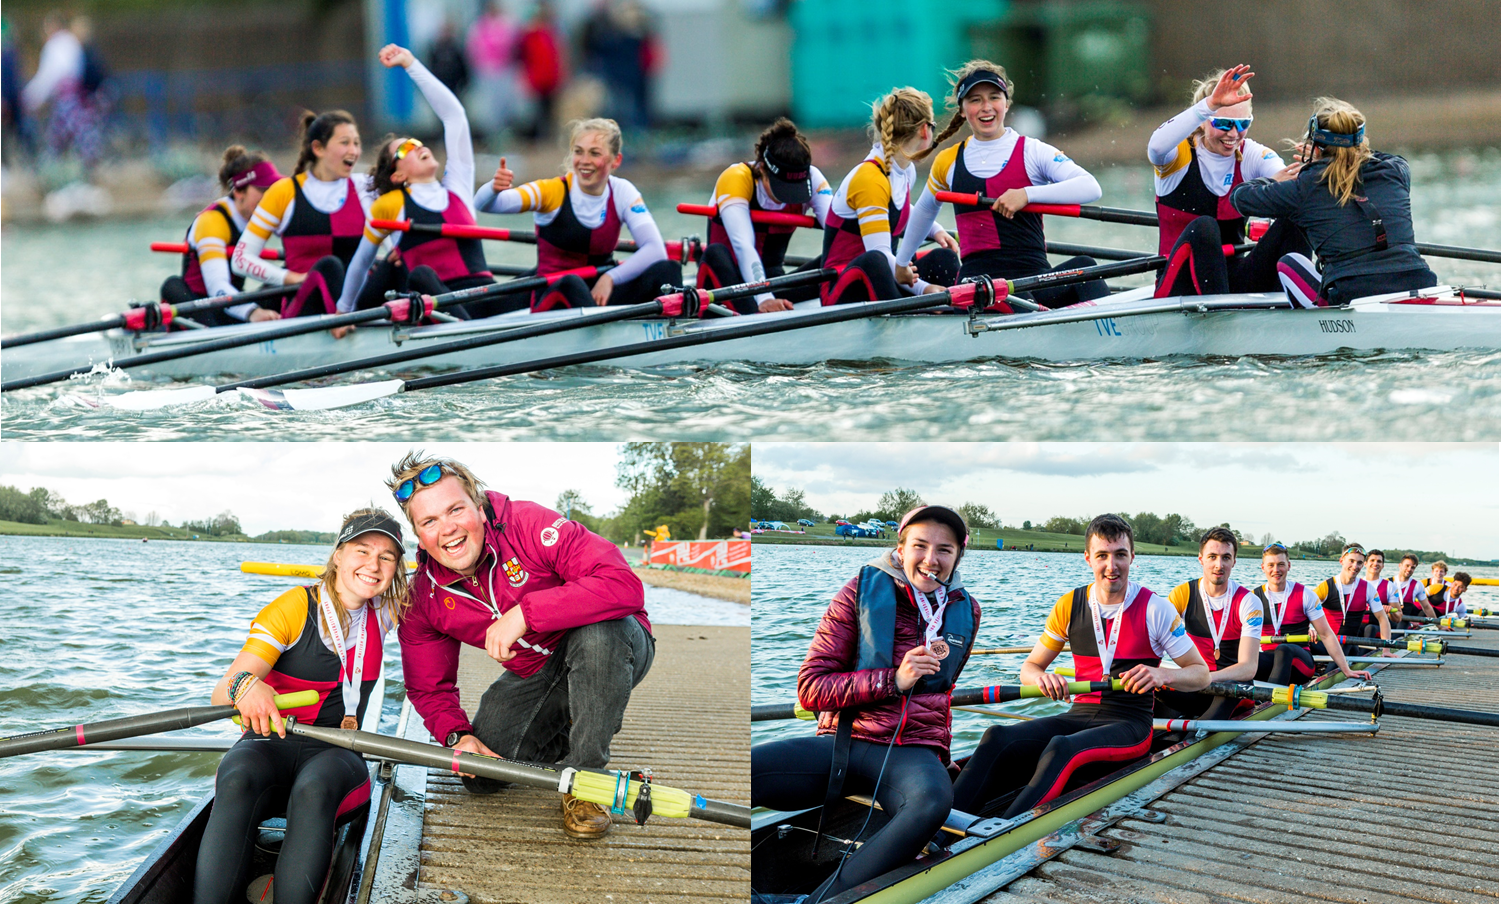 All smiles for Saturday's medalling crews.